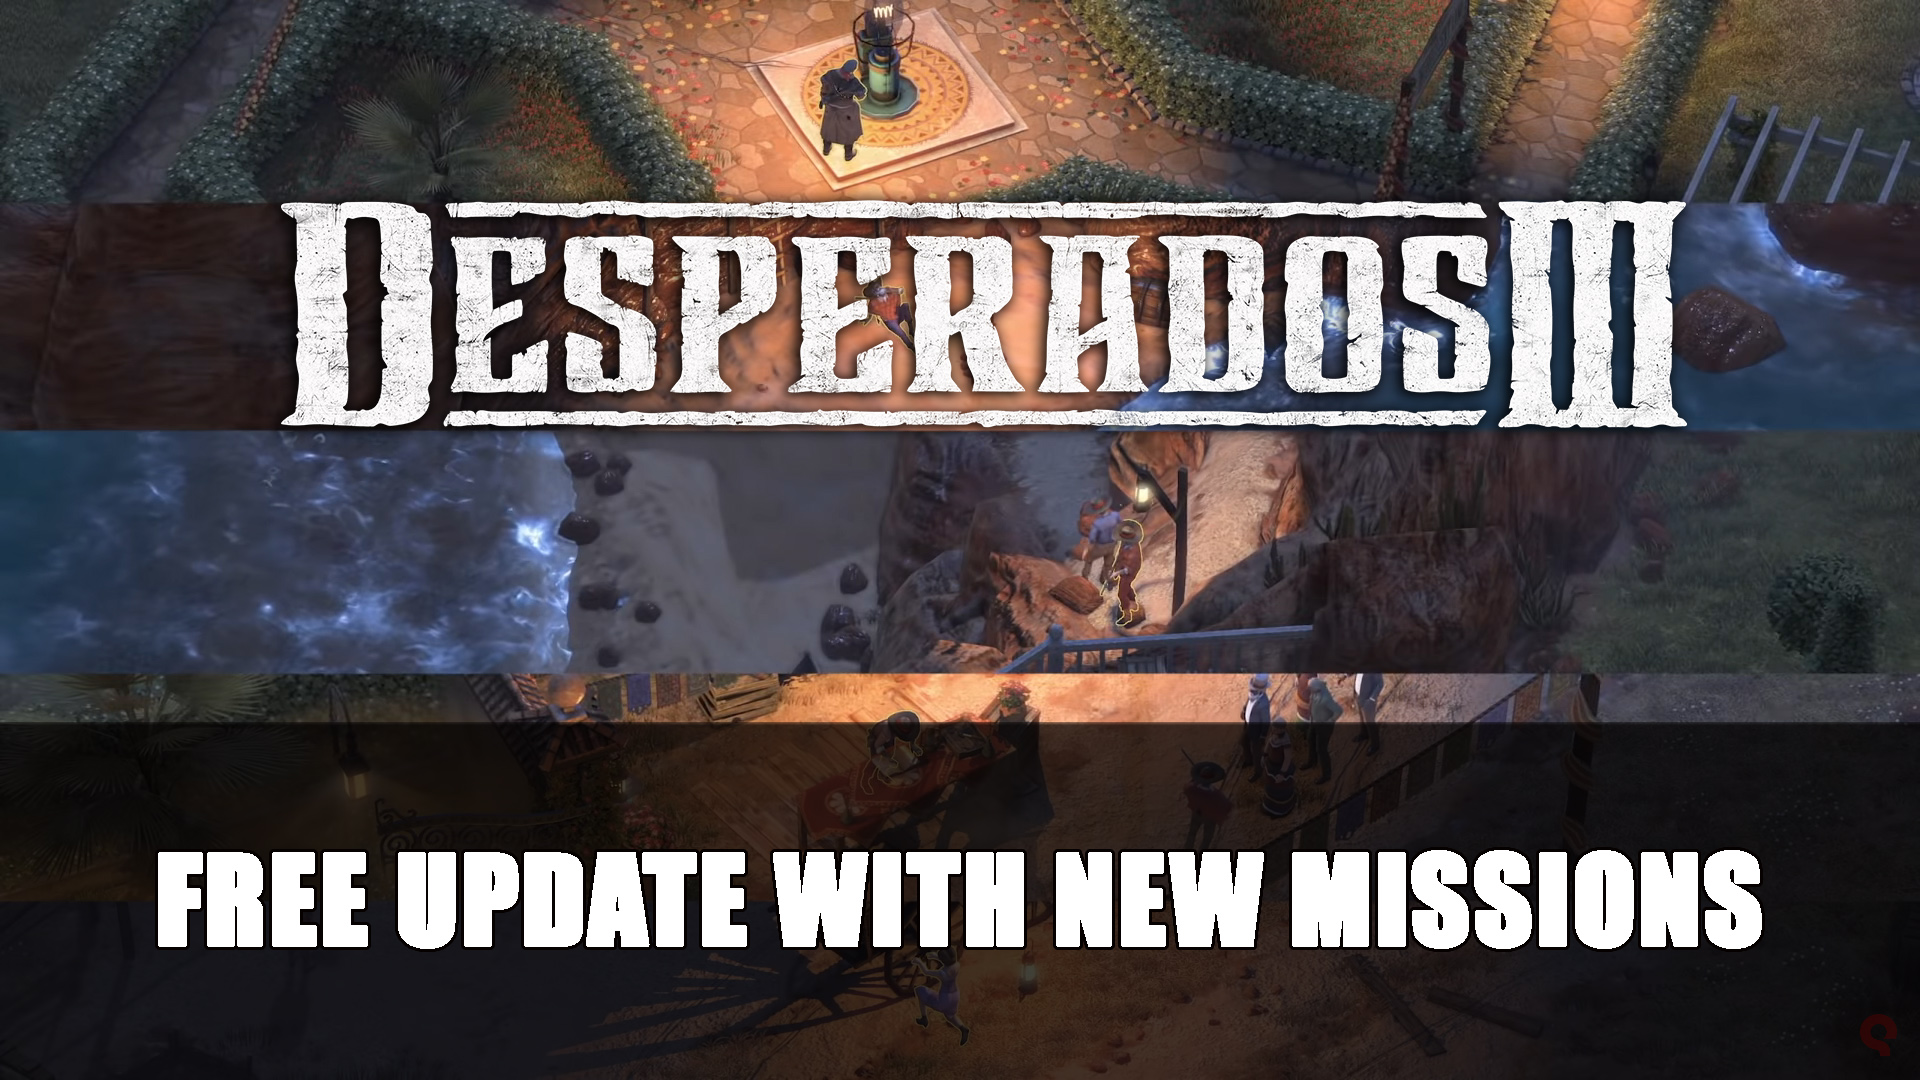 Desperados 3 Gets Free New Update With New Missions Fextralife